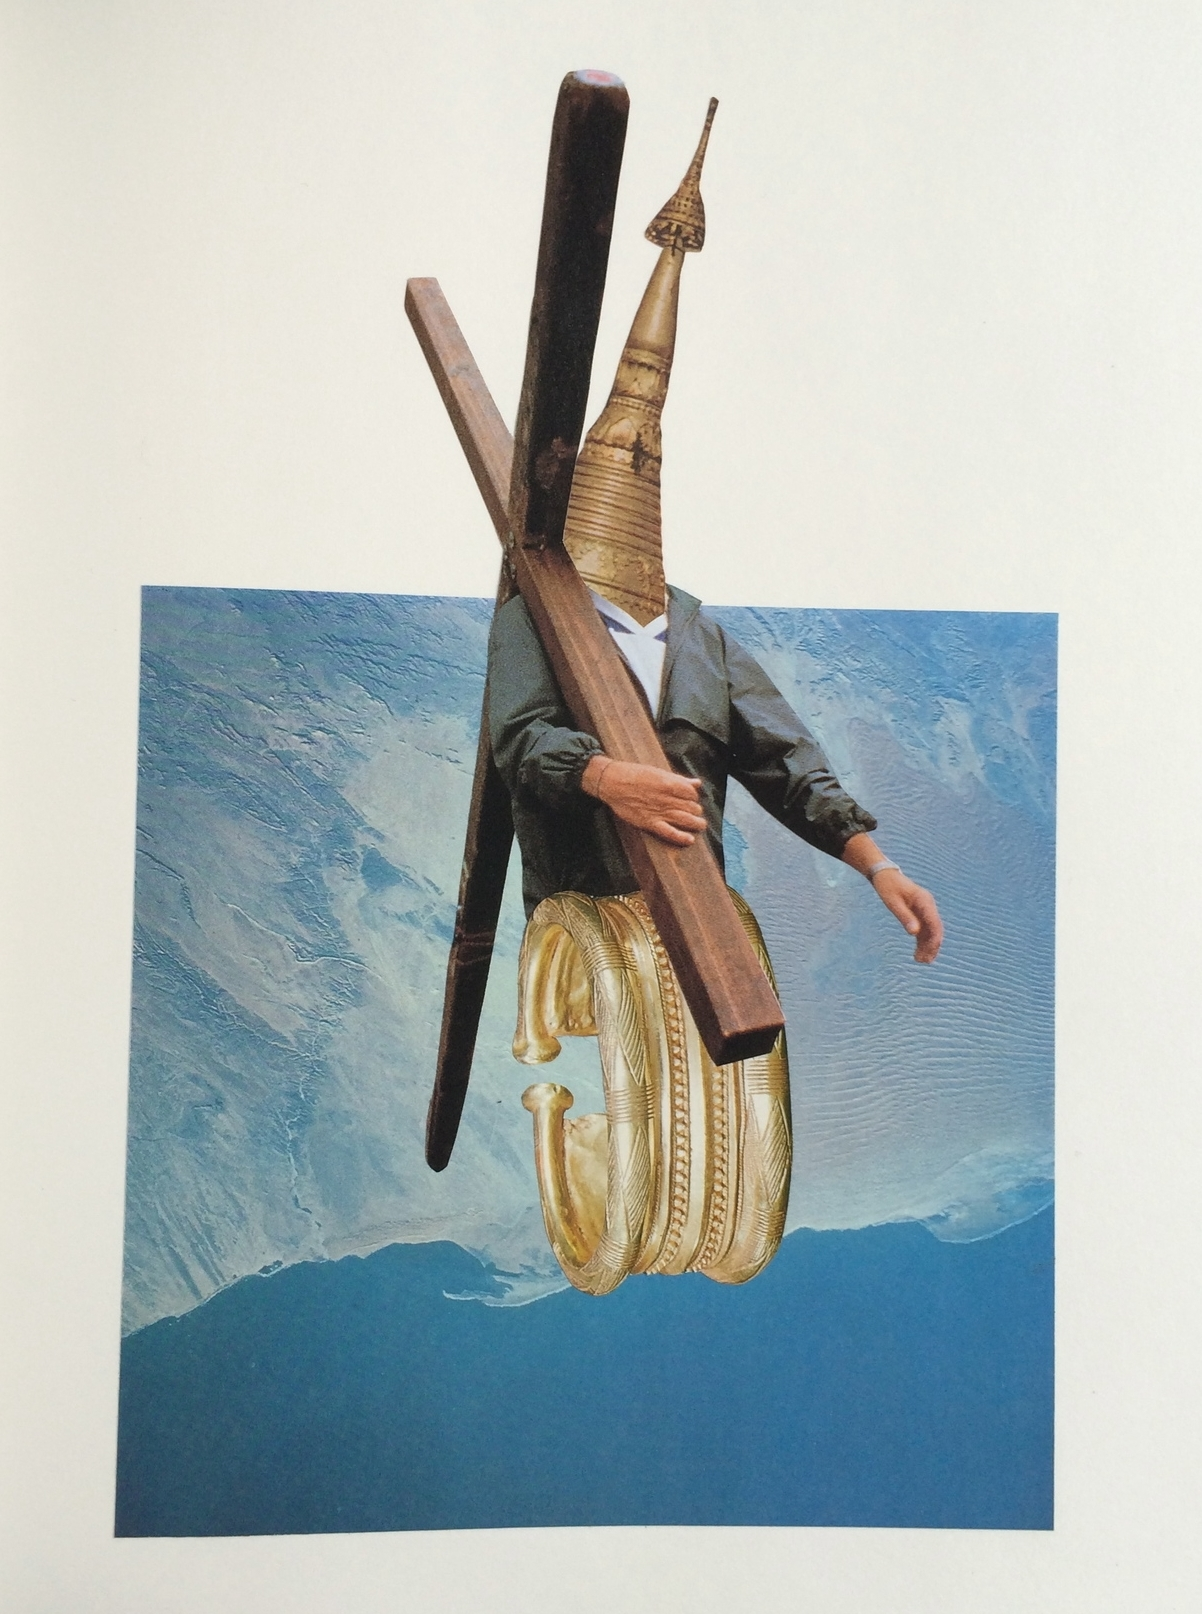 """Oh Heartless Hunger, Stay Within These Painted Lines   11"""" x 14"""" Hand Cut Paper Collage on Vellum Paper"""